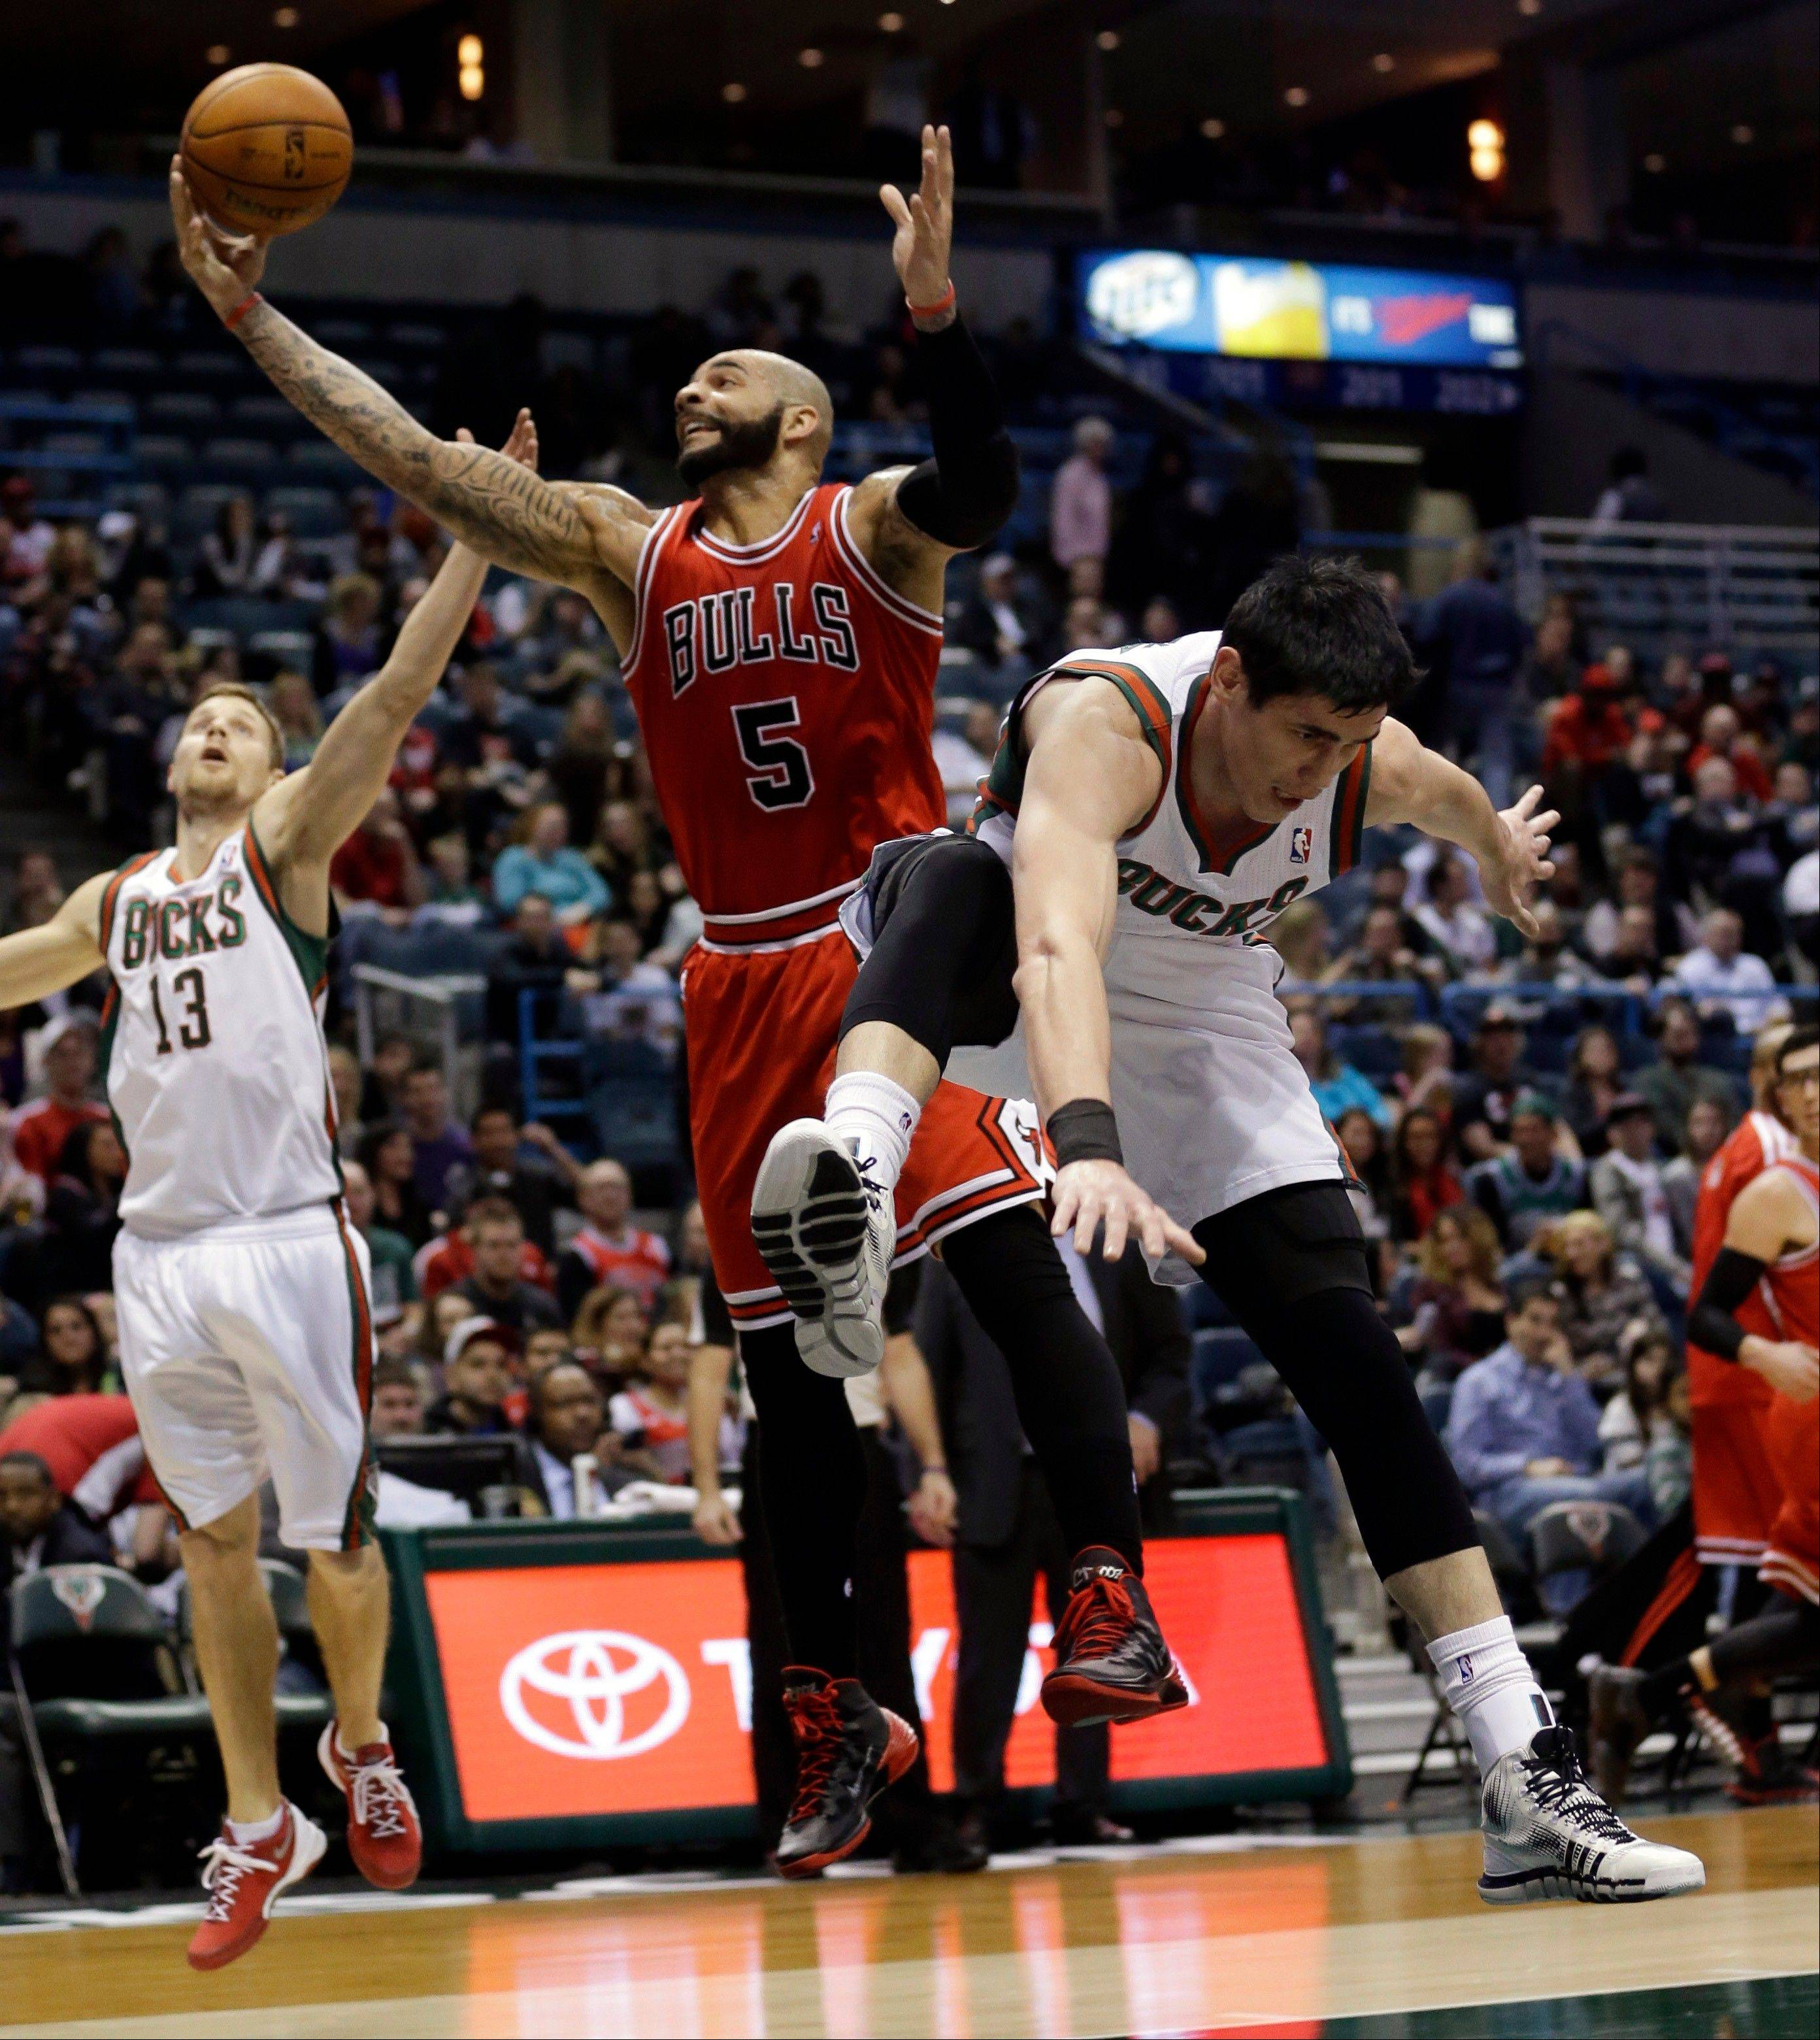 Chicago Bulls' Carlos Boozer (5) goes after a rebound between Milwaukee Bucks' Ersan Ilyasova and Luke Ridnour (13) during the first half of an NBA basketball game Friday, Jan. 10, 2014, in Milwaukee.